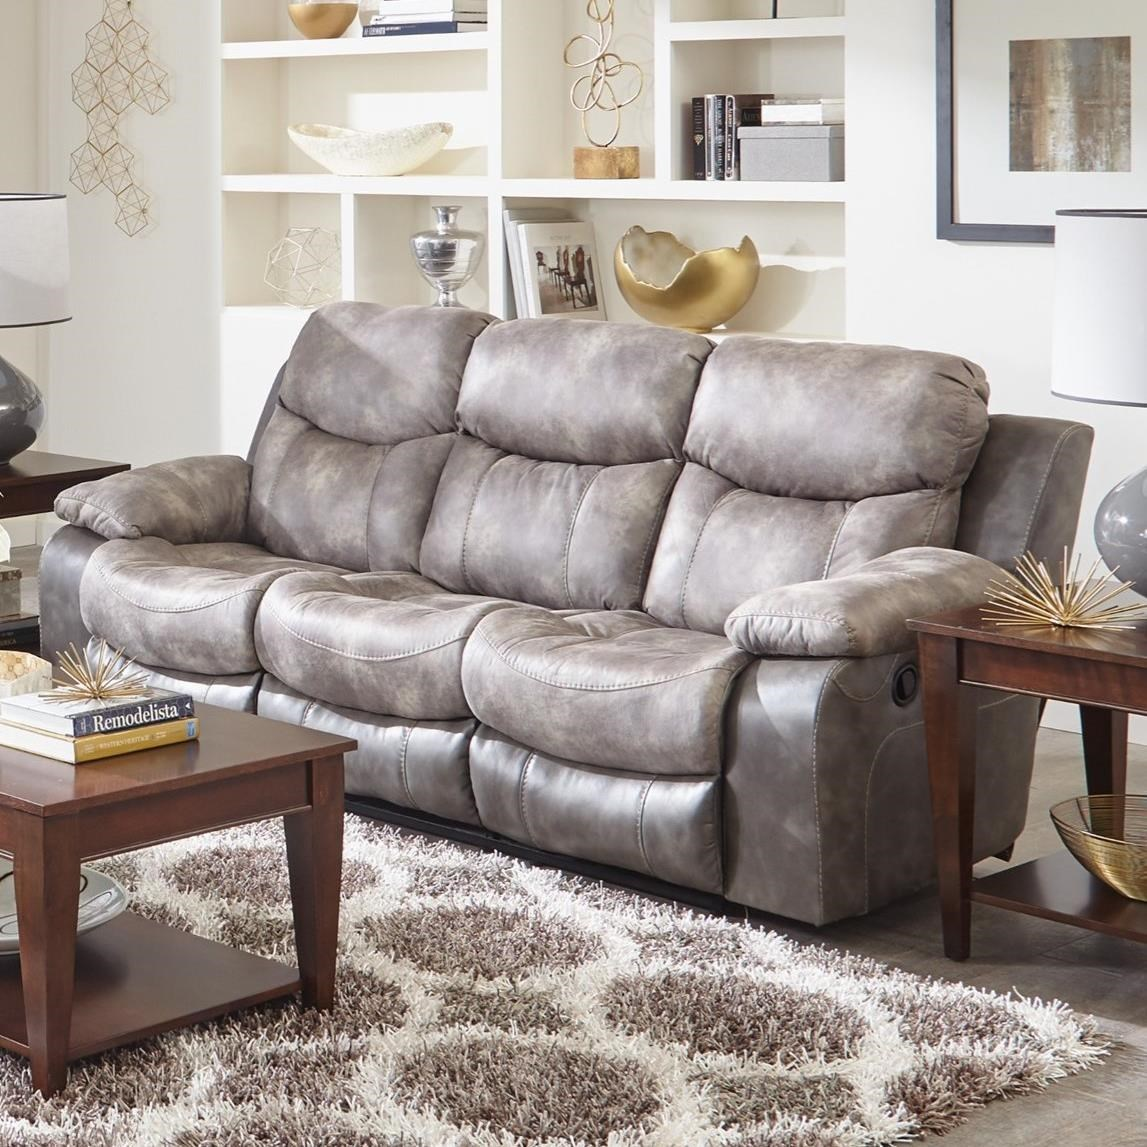 Awesome Catnapper Henderson Reclining Sofa With Drop Down Table